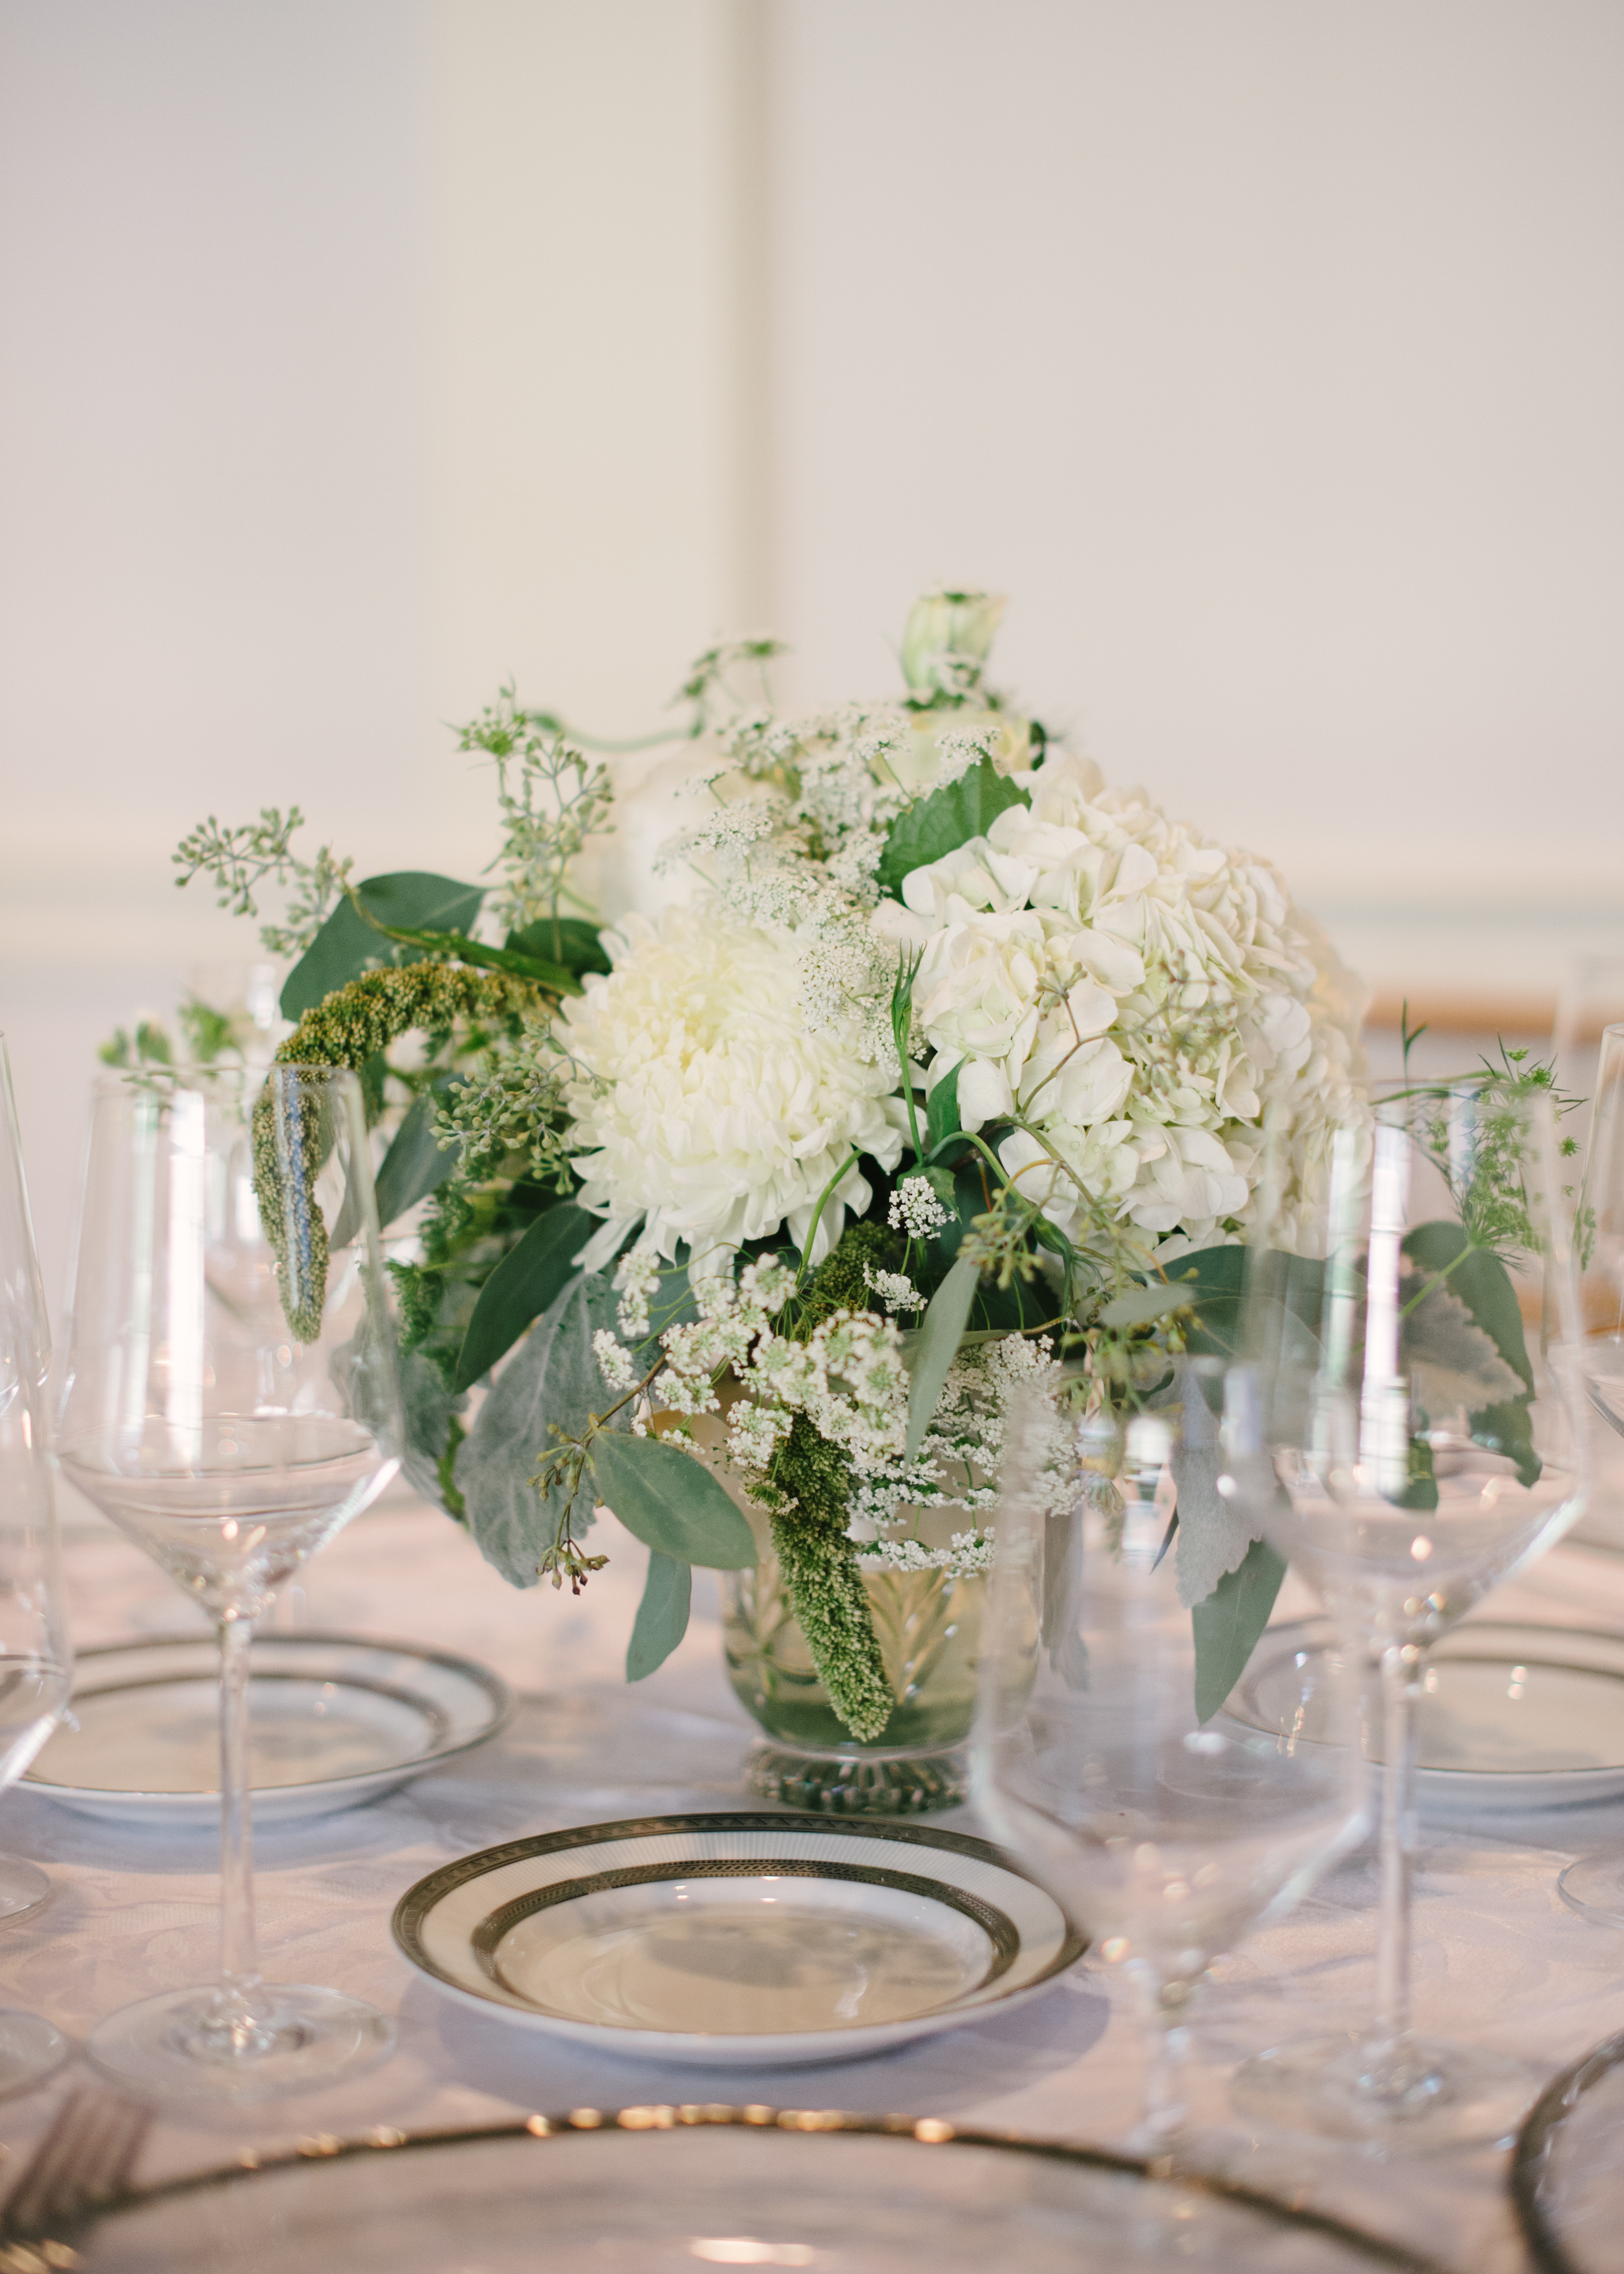 {Table setting by Polished!}